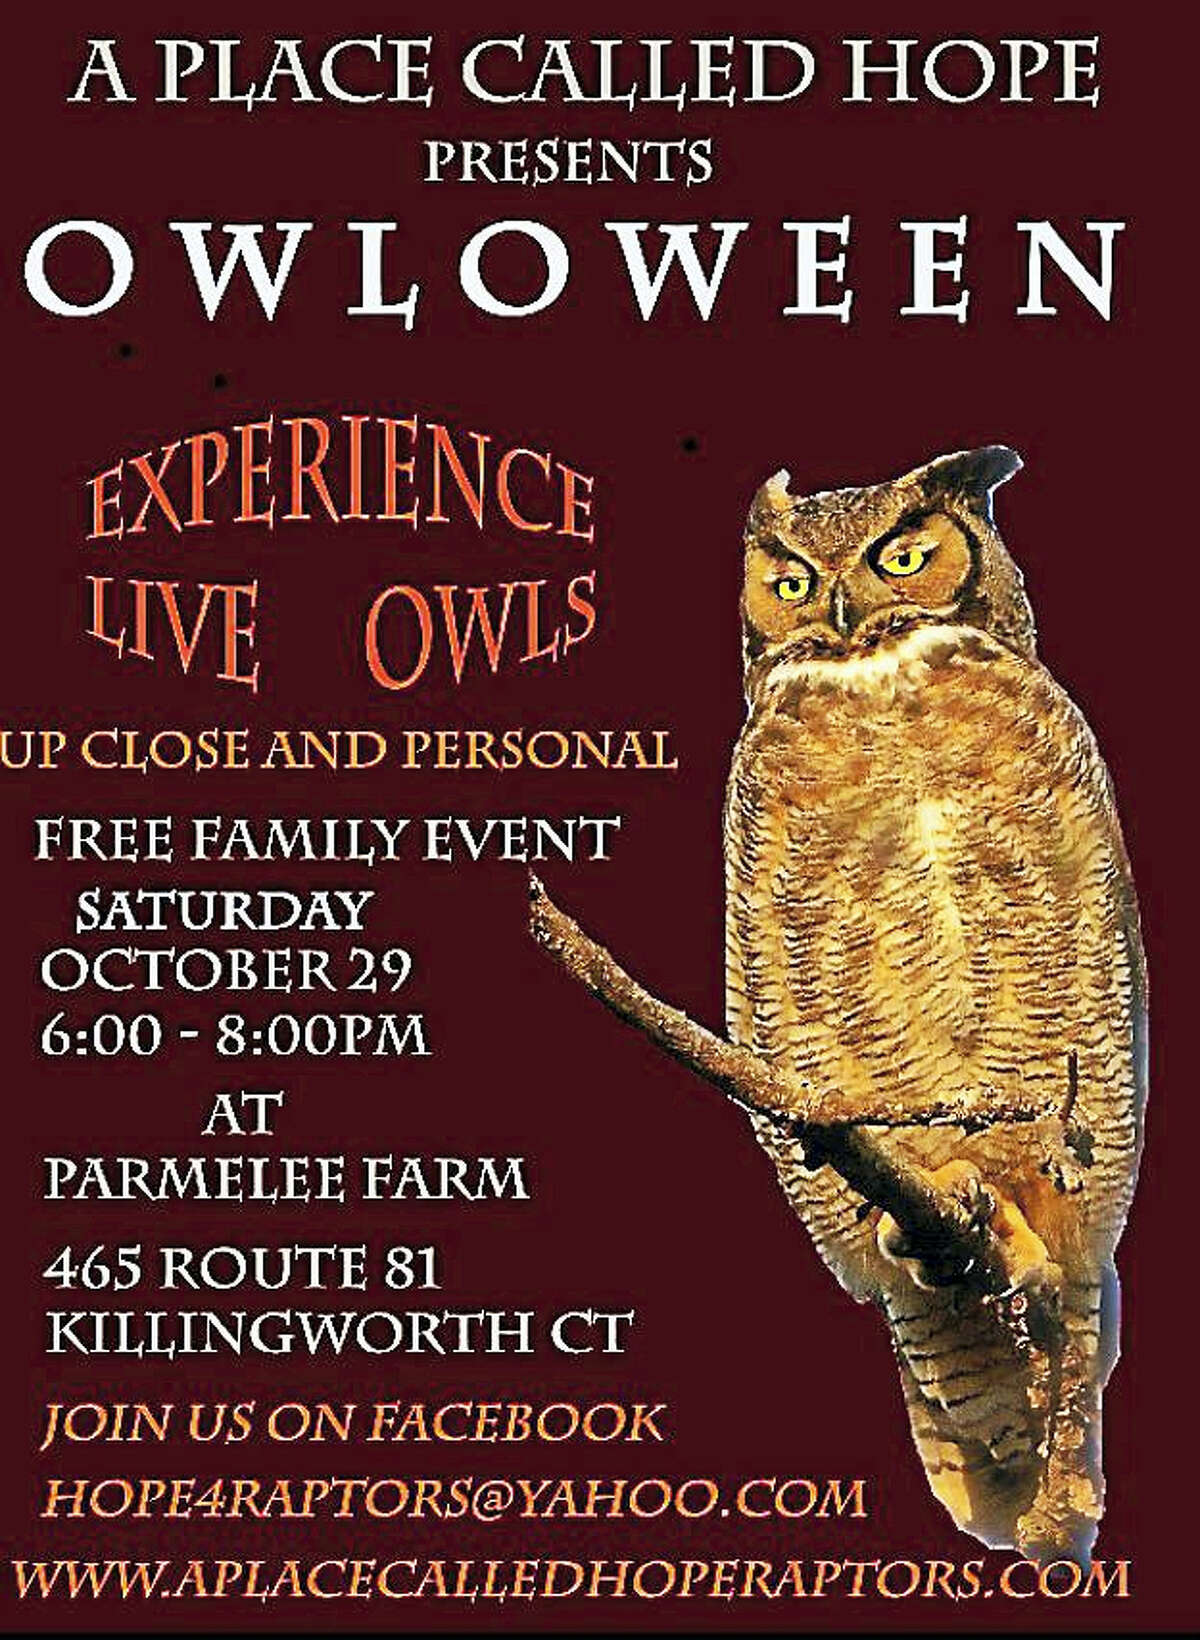 A Place Called Hope is hosting it's tenth annual Owl-O-Ween event on Saturday, October 29th from 6-8pm. This is free familly event and takes place outdoors at Parmelee Farm. 465 Route 81 Killingorth CT. Have a close up encounter with Native Owls! Wear your costumes